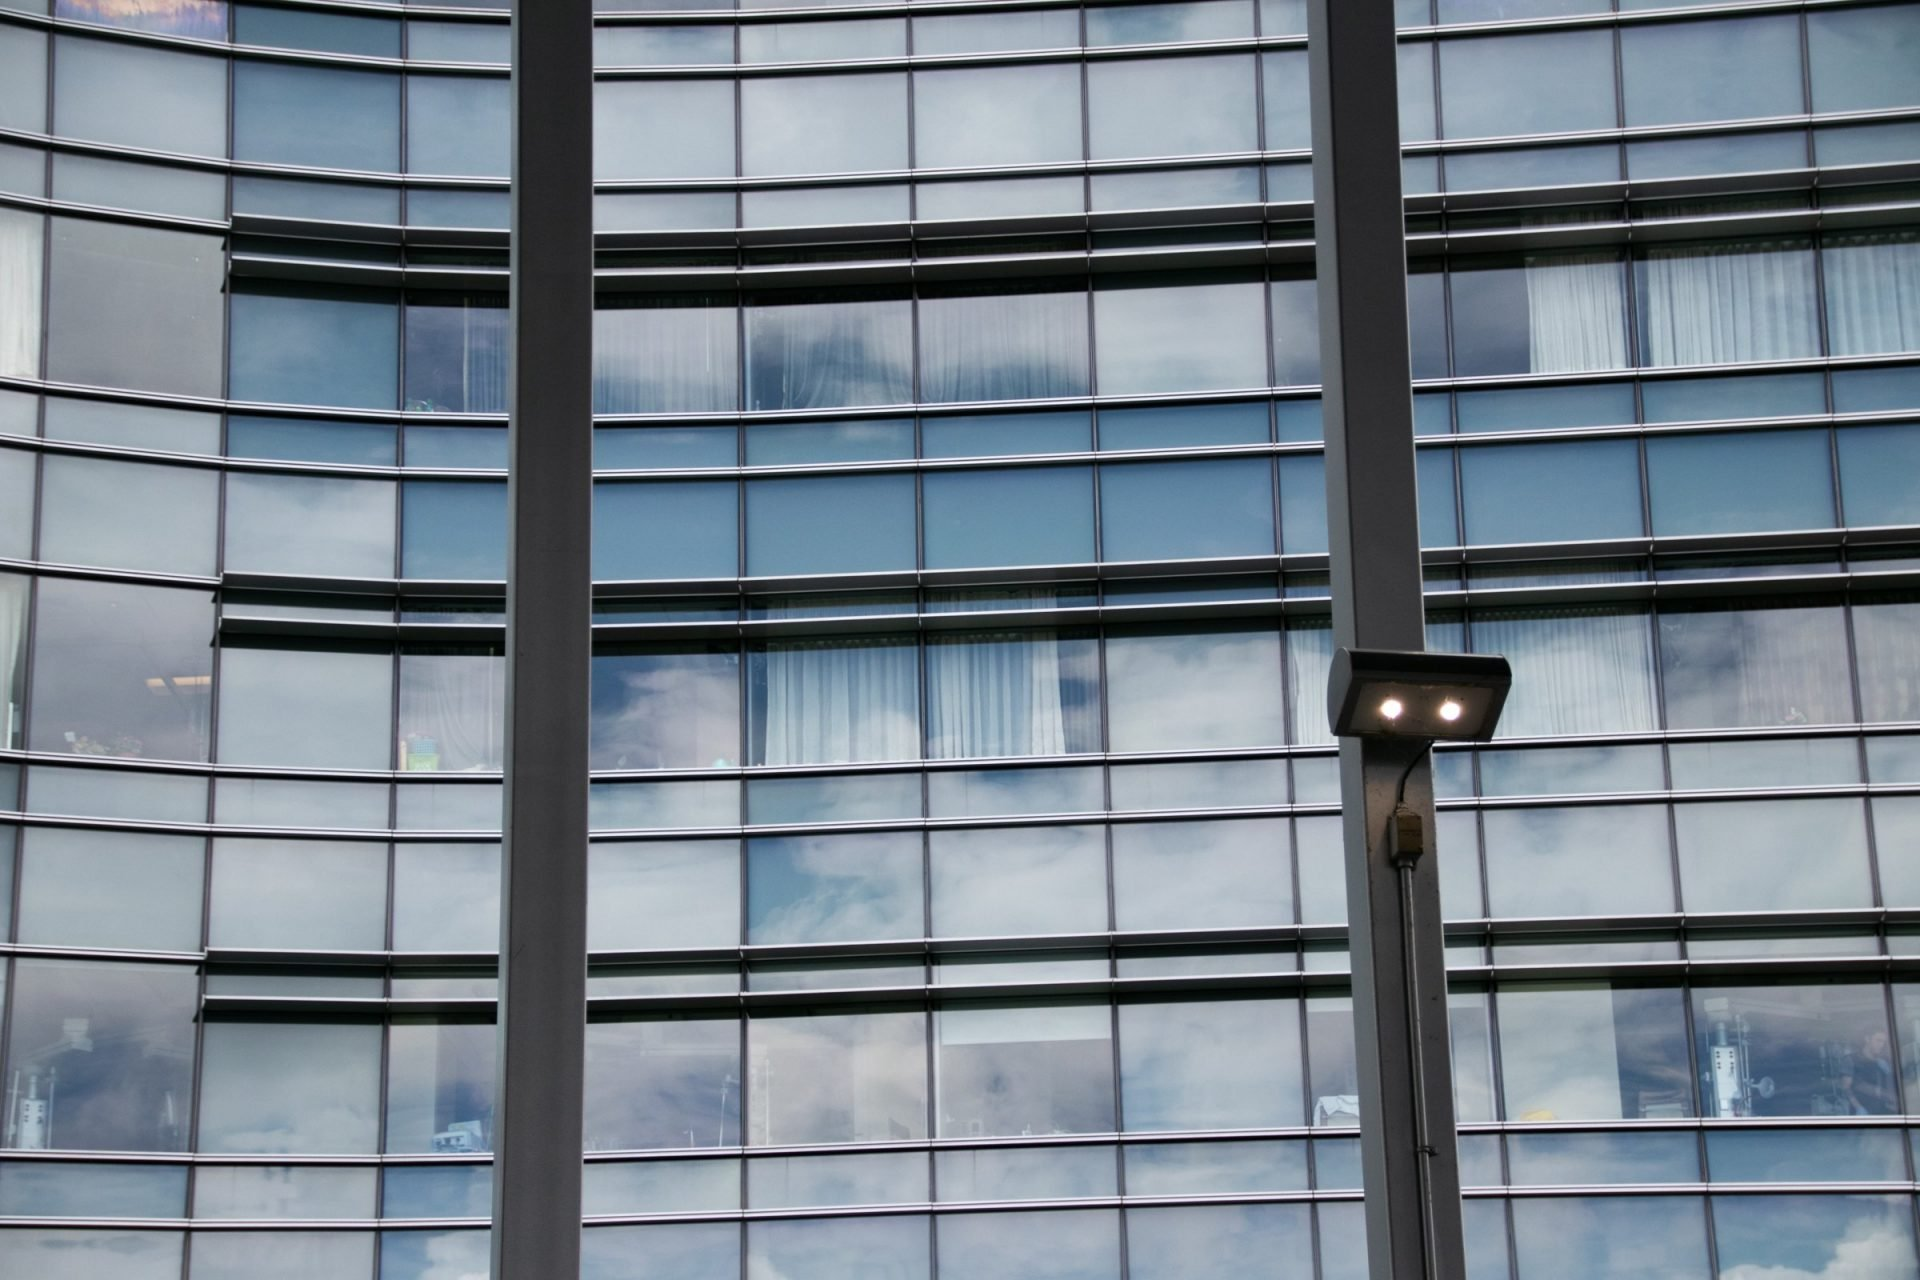 Glass Building Through Window